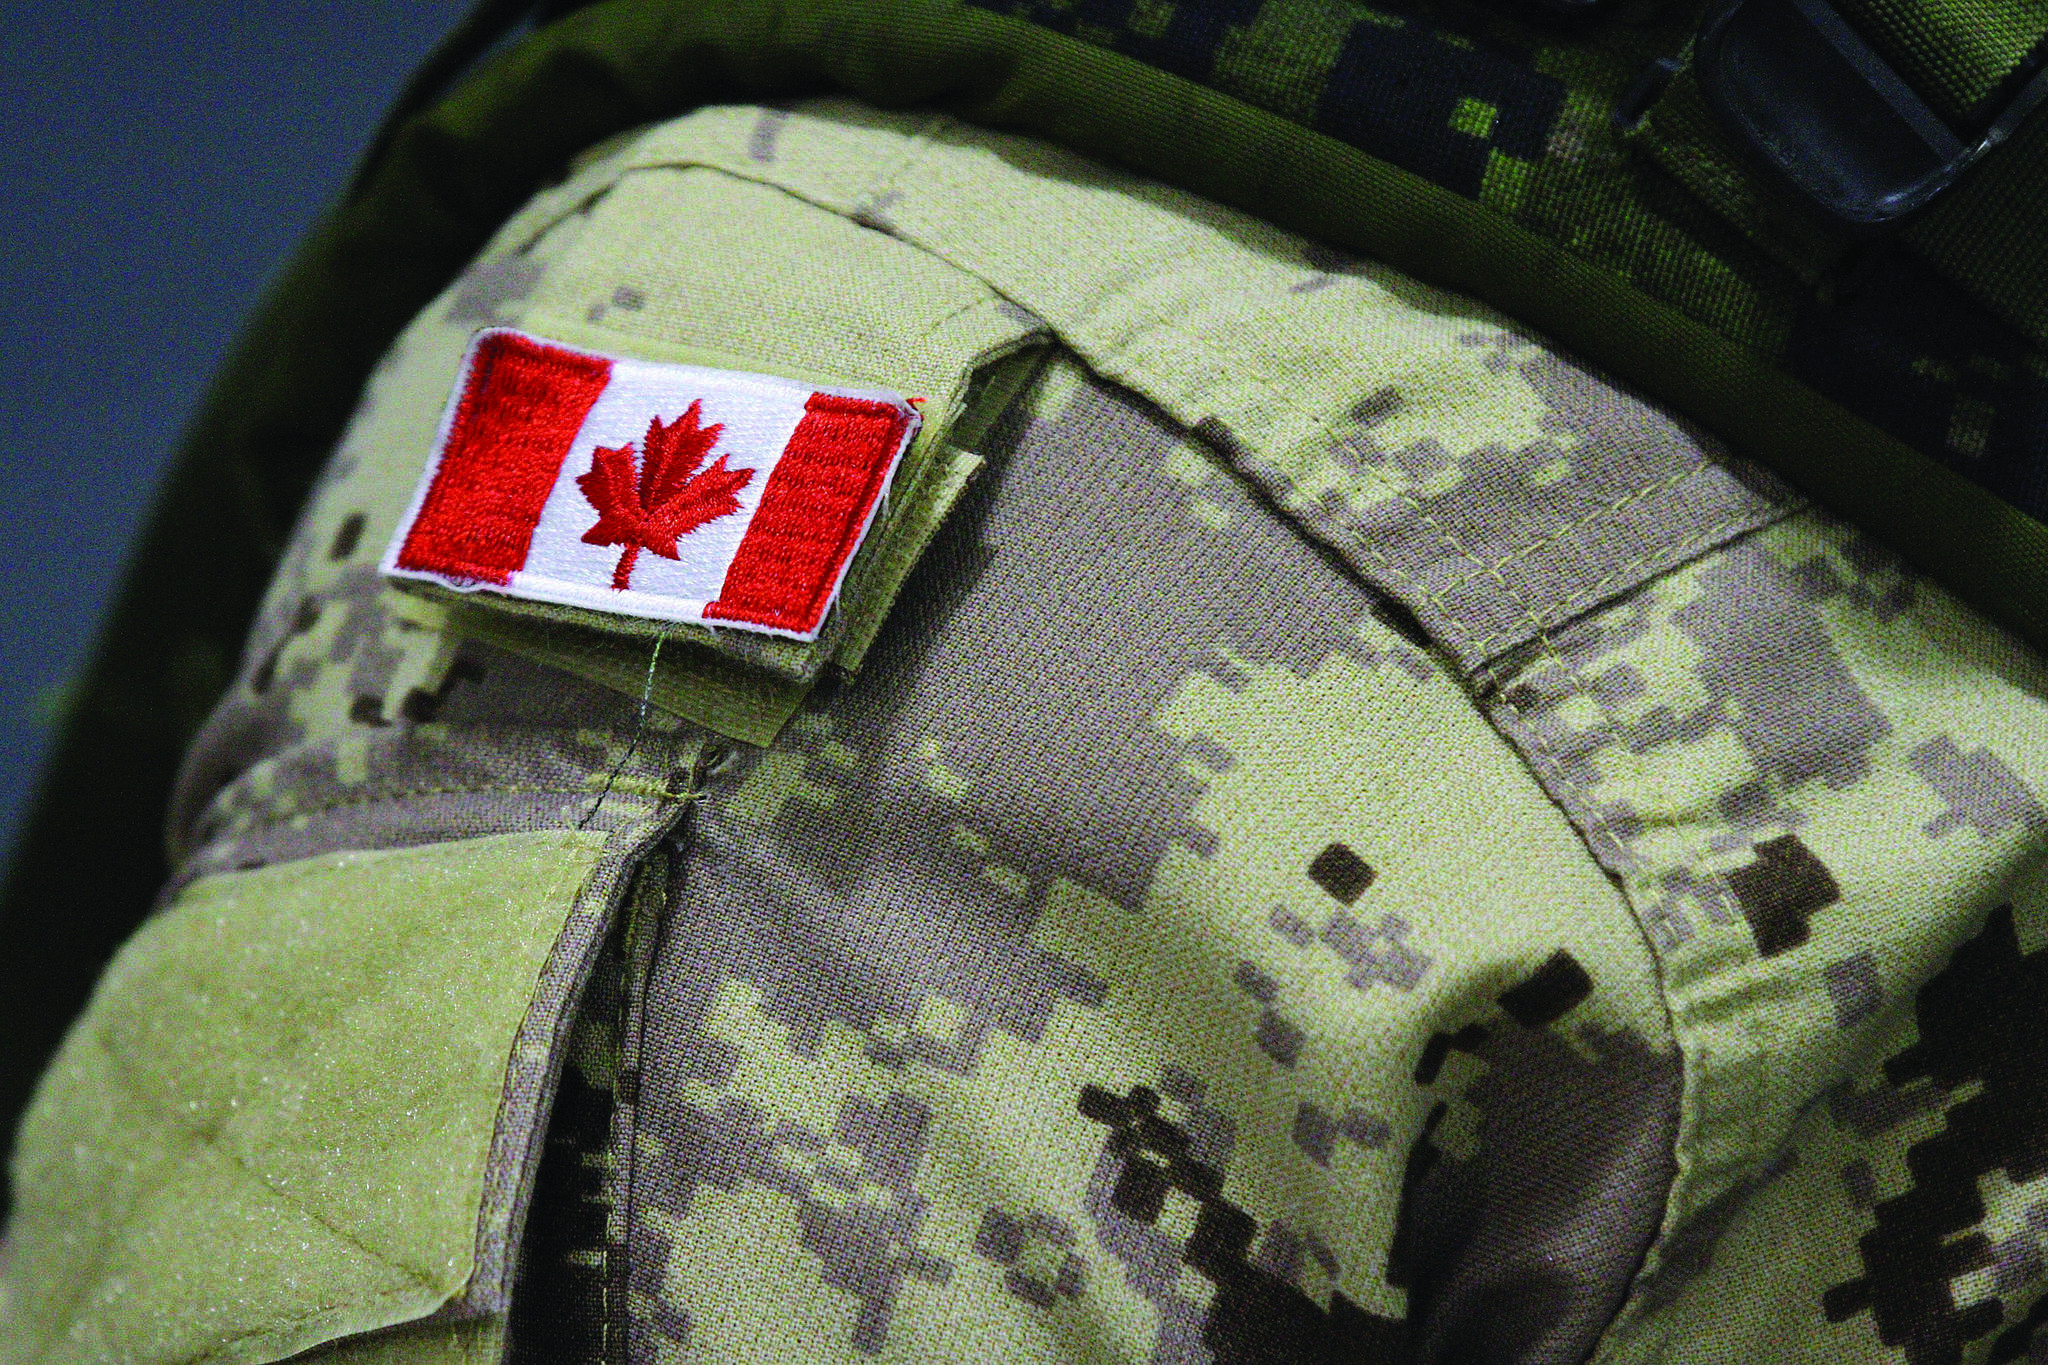 A Canadian flag is shown on the uniform of a member of the military in Trenton, Ont., on Thursday, Oct. 16, 2014. (Photo: THE CANADIAN PRESS/Lars Hagberg)